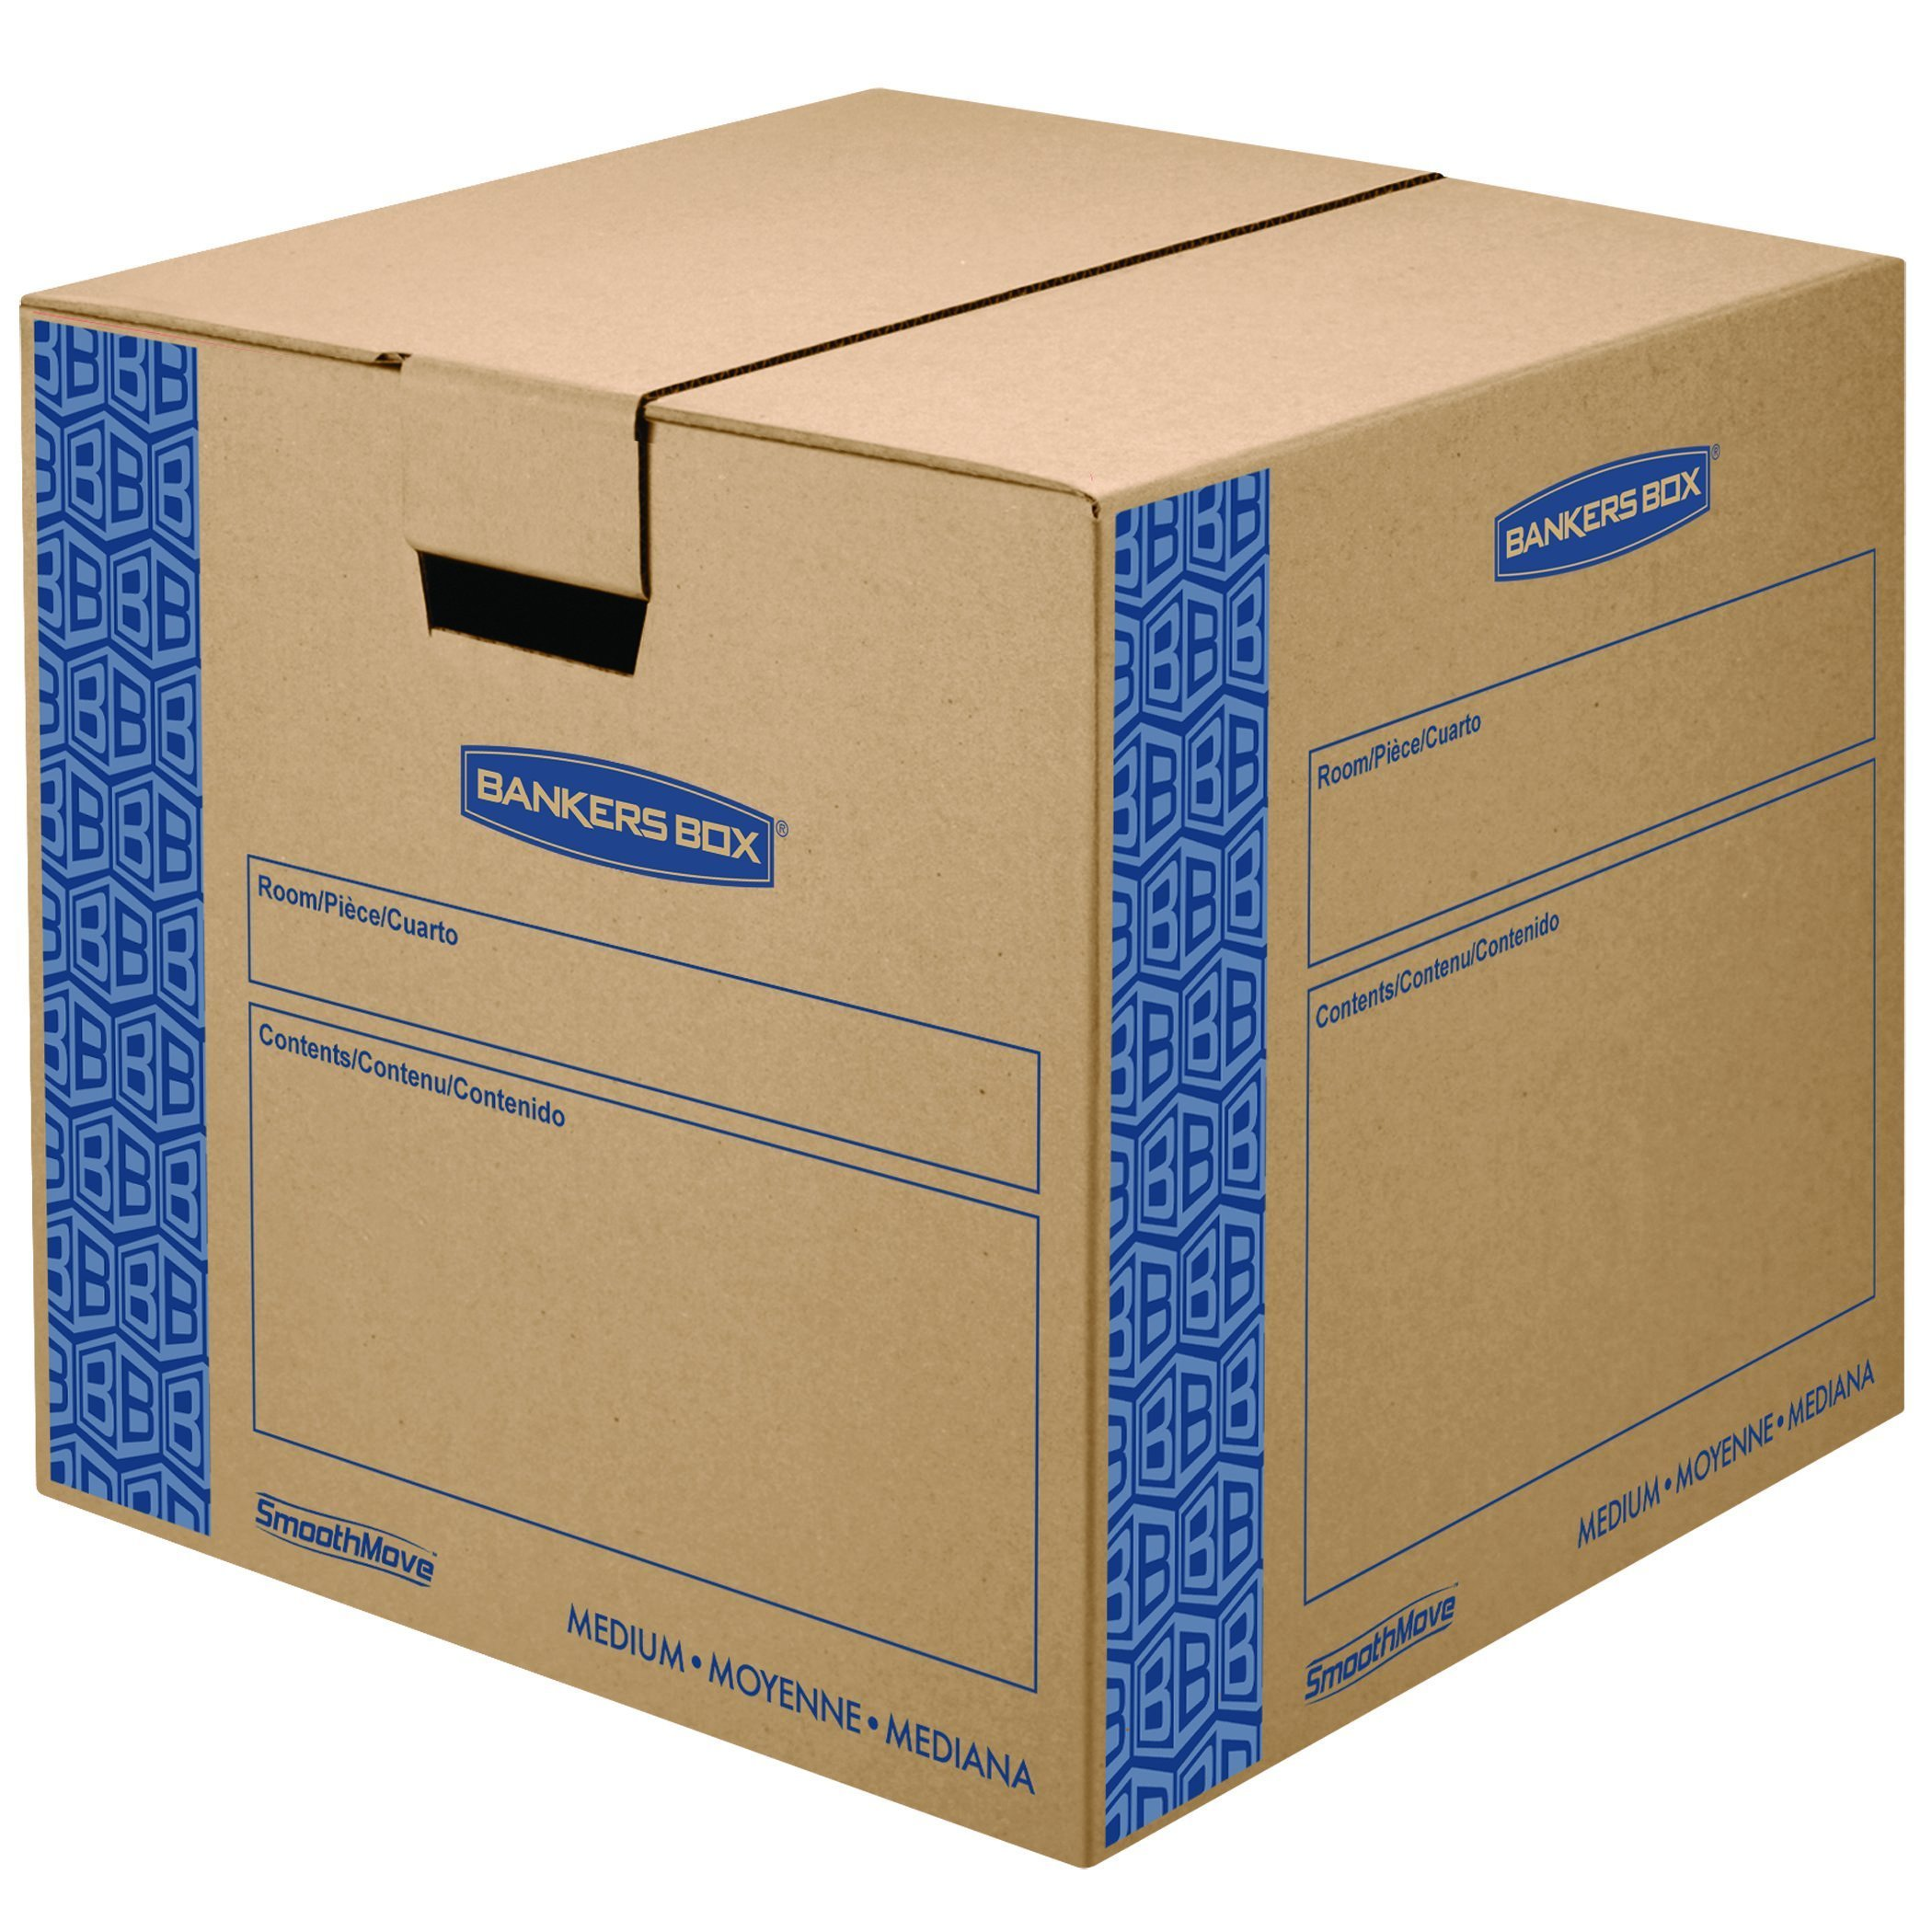 Bankers Box SmoothMove Prime Moving Boxes, Medium, 8-Pack (Renewed)